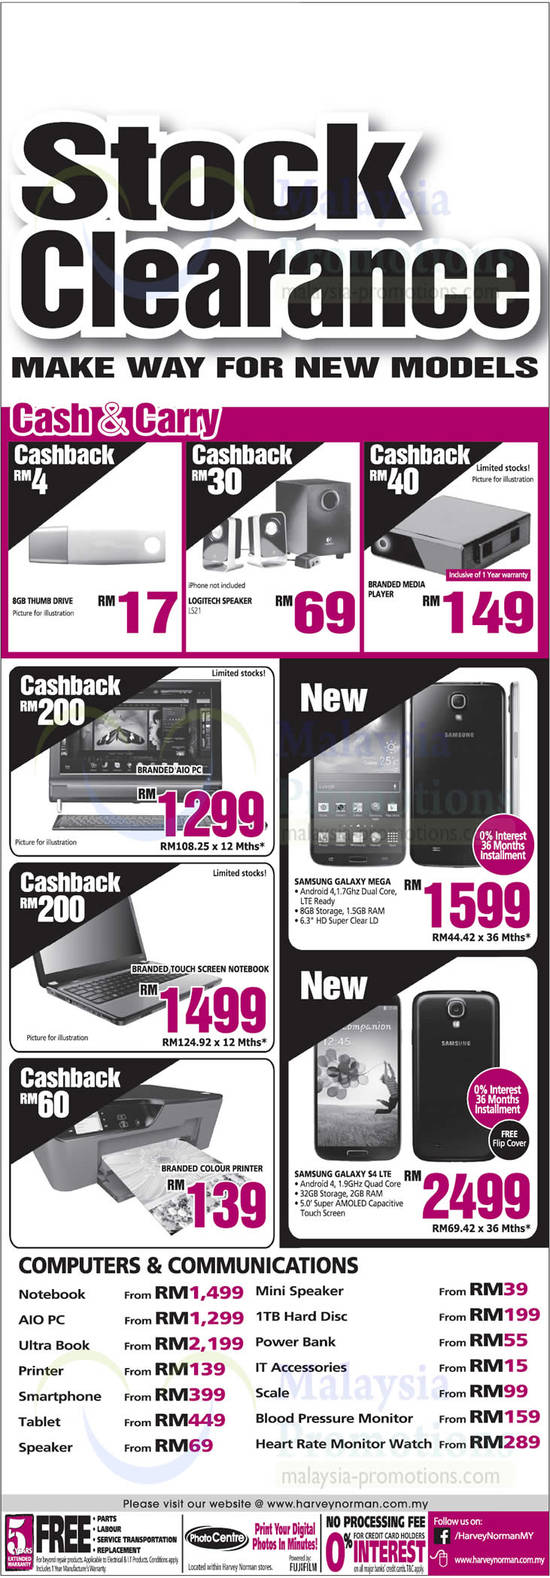 Featured image for Harvey Norman Digital Cameras, Furniture, Notebooks & More Offers 22 - 28 June 2013